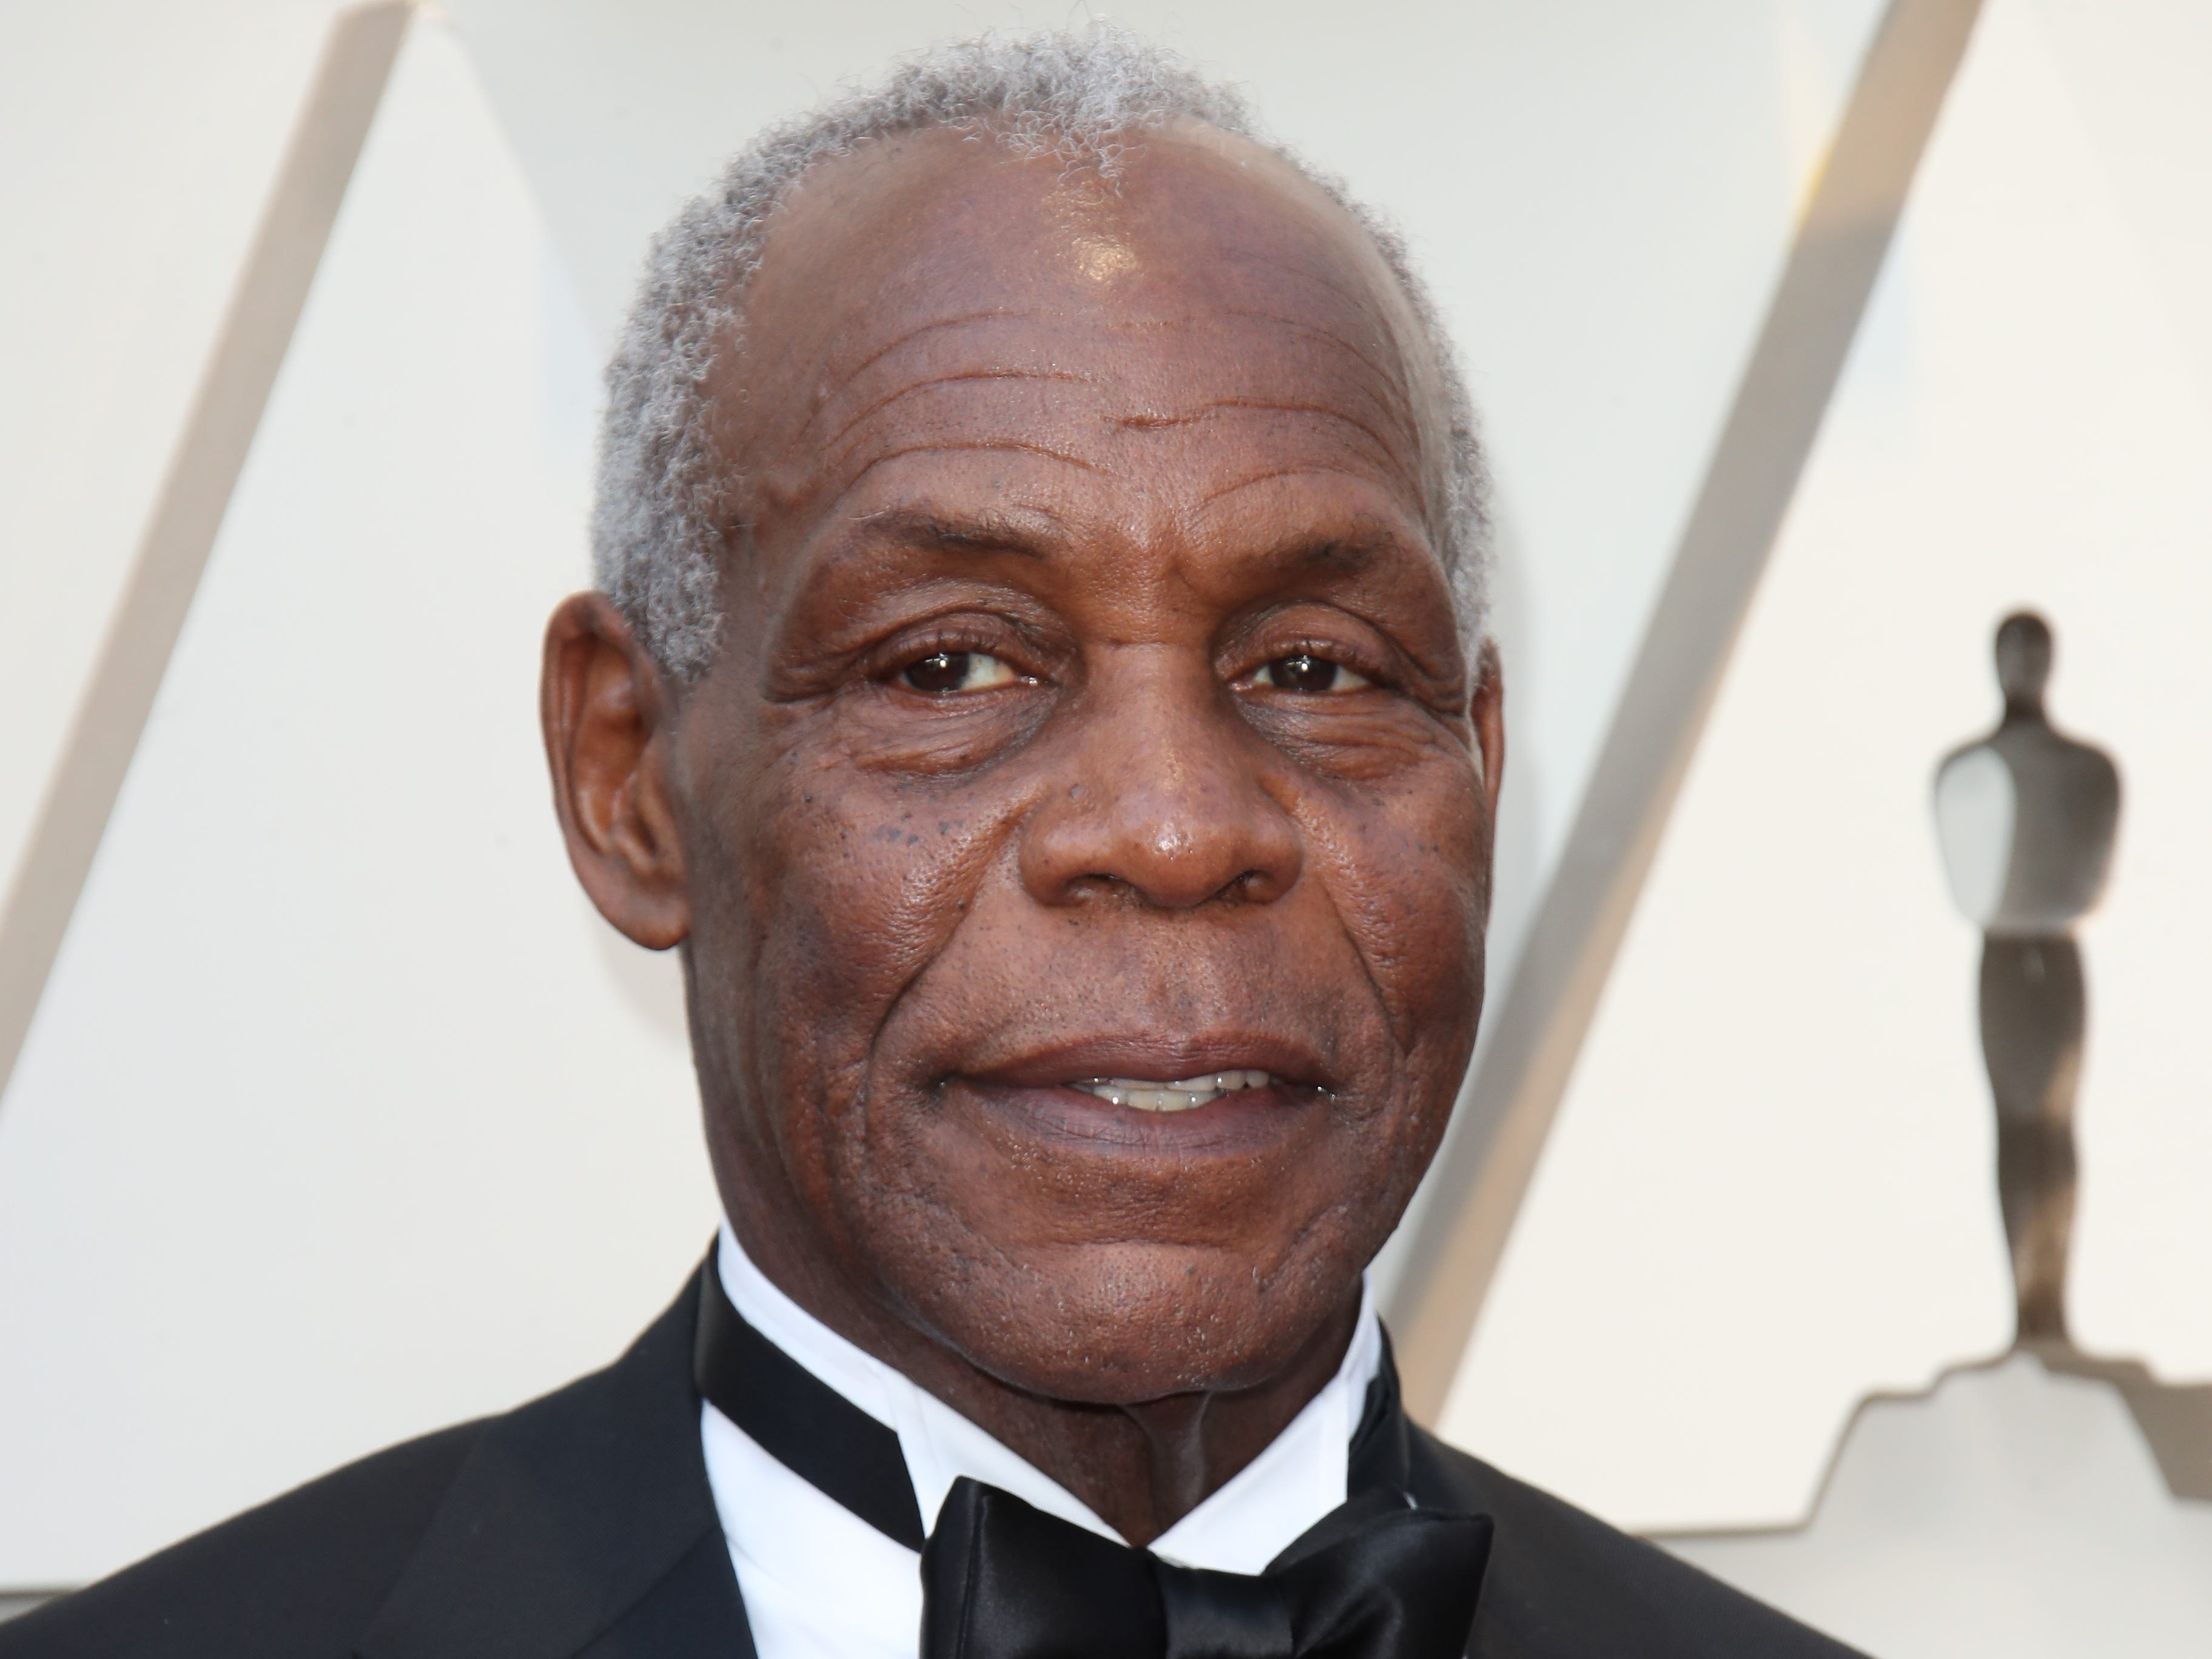 February 24, 2019; Los Angeles, CA, USA; Danny Glover arrives at the 91st Academy Awards at the Dolby Theatre. Mandatory Credit: Dan MacMedan-USA TODAY NETWORK (Via OlyDrop)